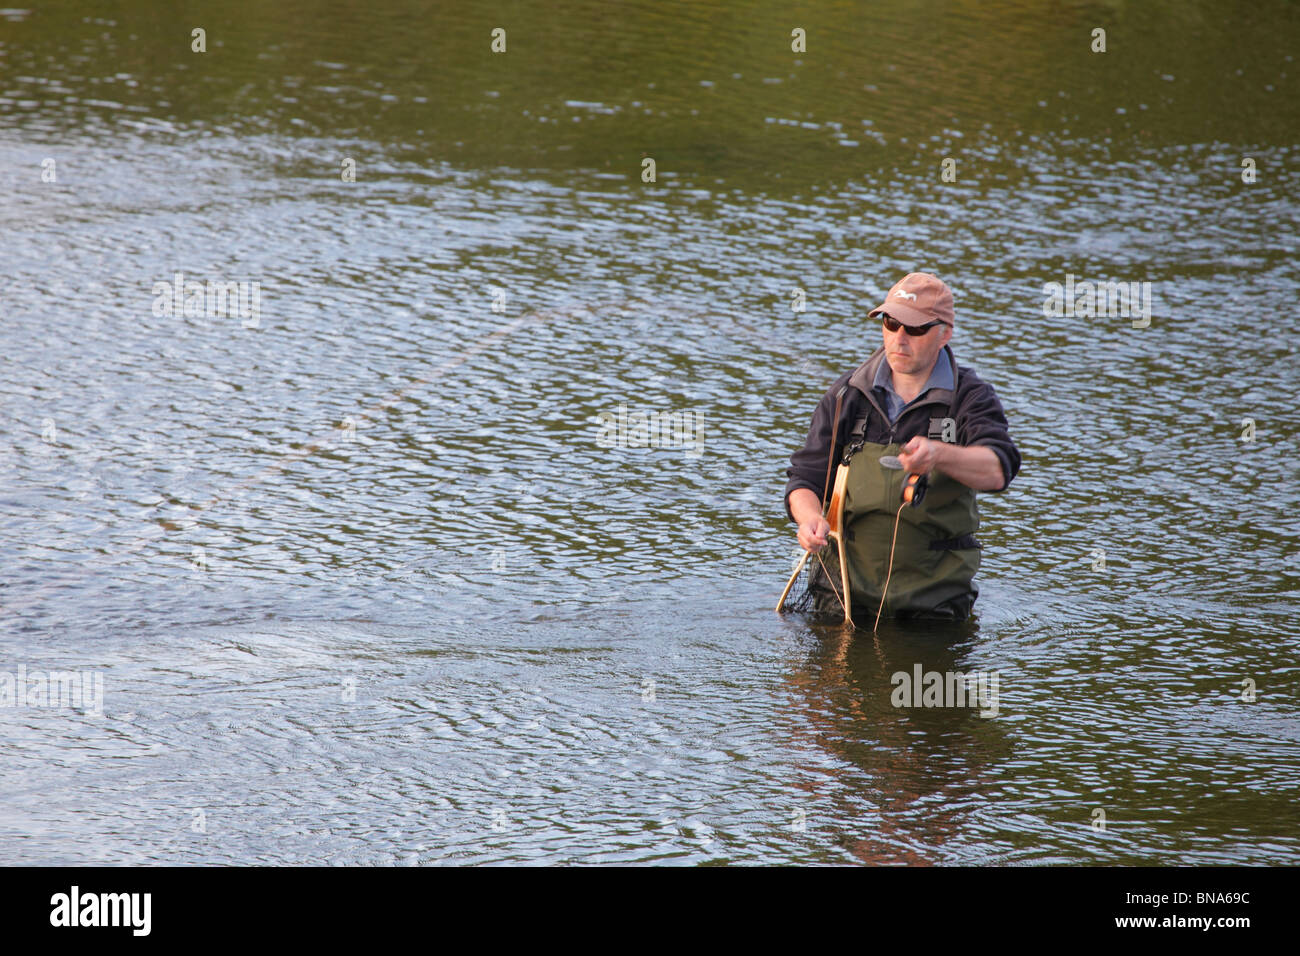 Fly Fisherman wading in the River Eden fishing for Sea Trout near Carlisle, Cumbria, England, United Kingdom. - Stock Image